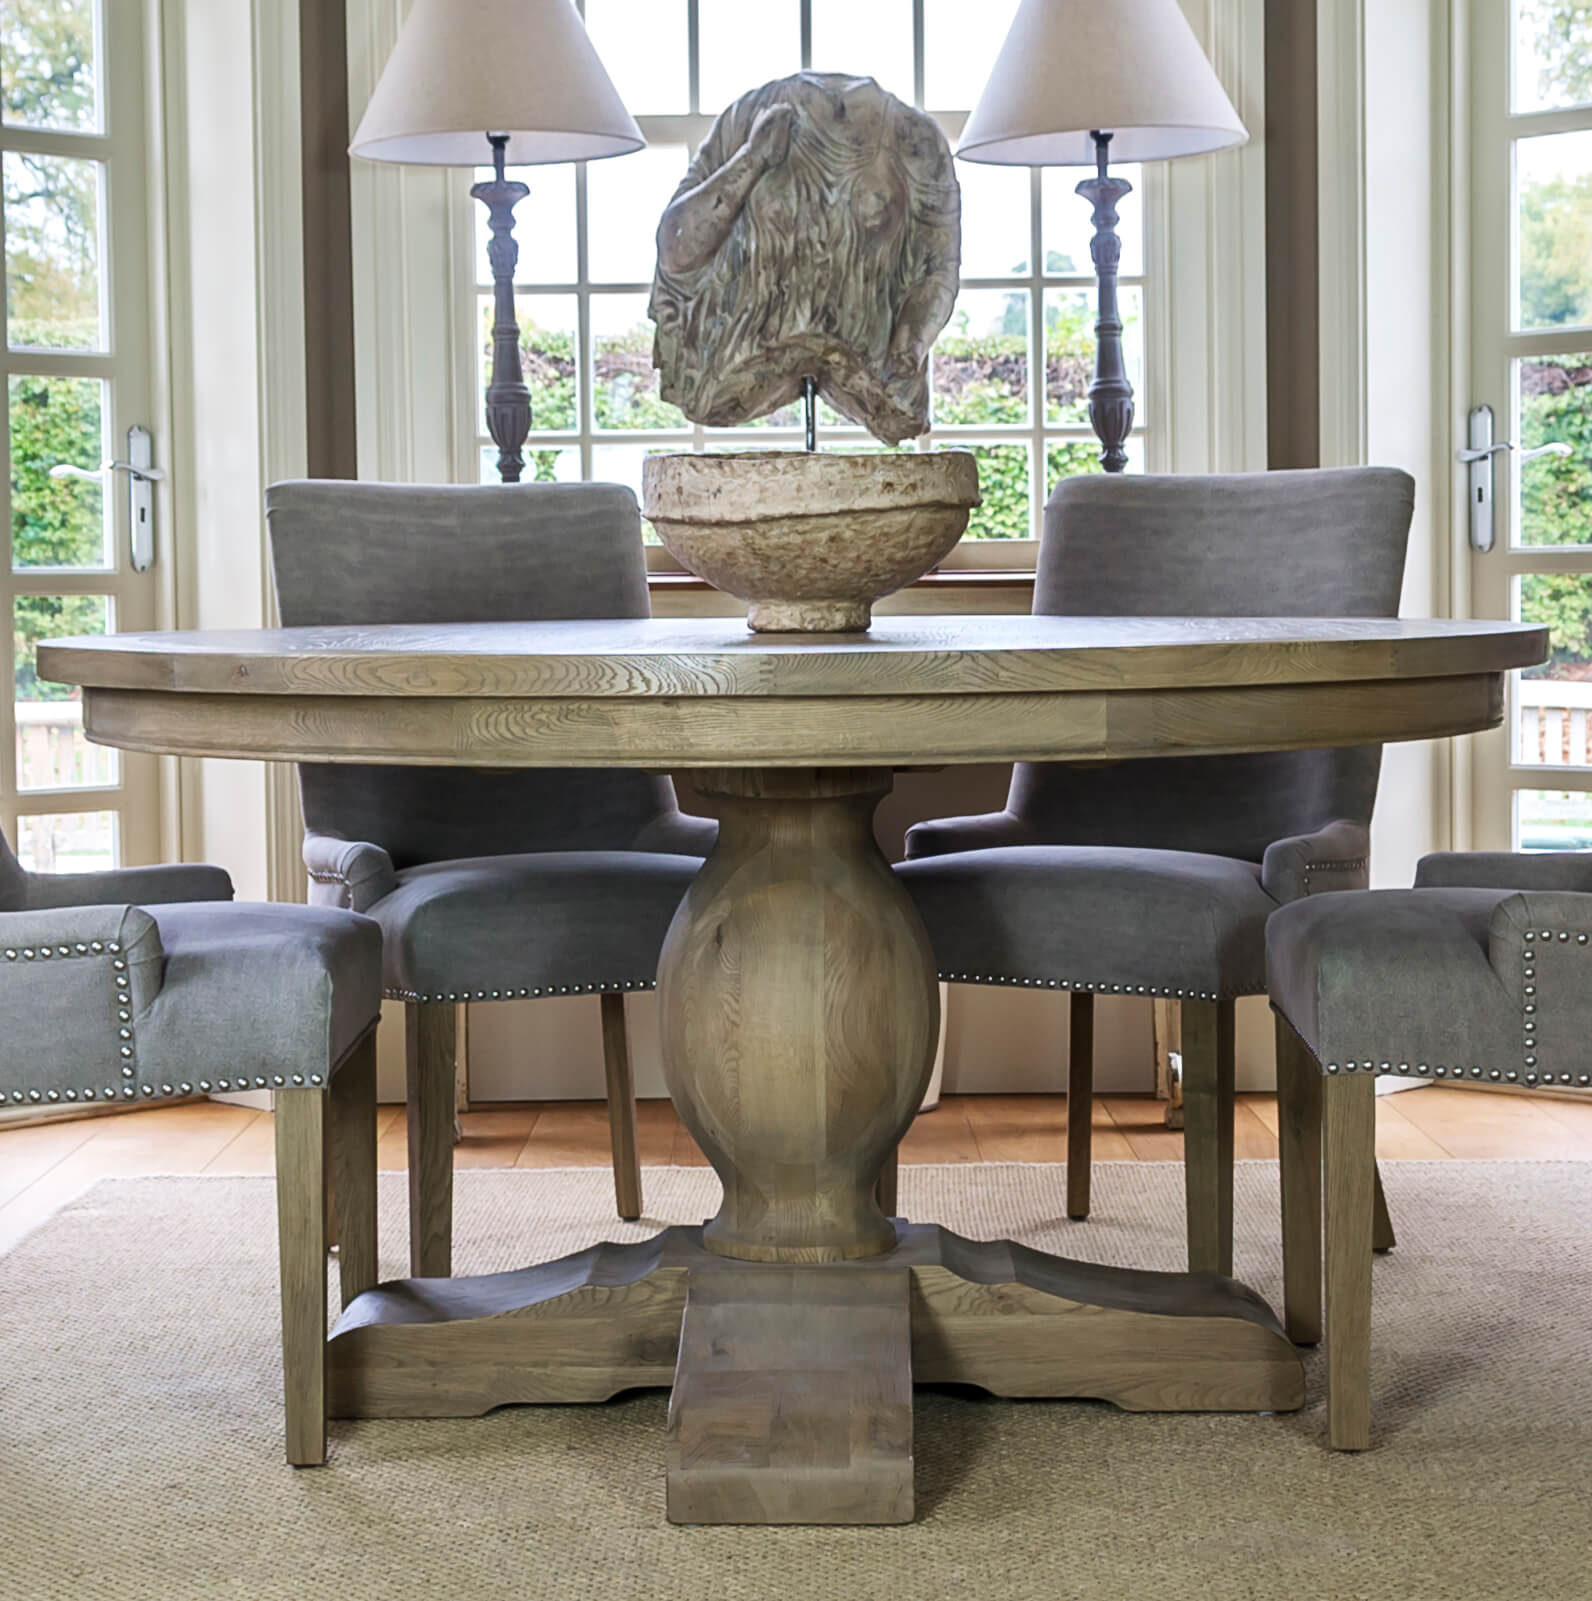 Style Dining Table Tap To Expand